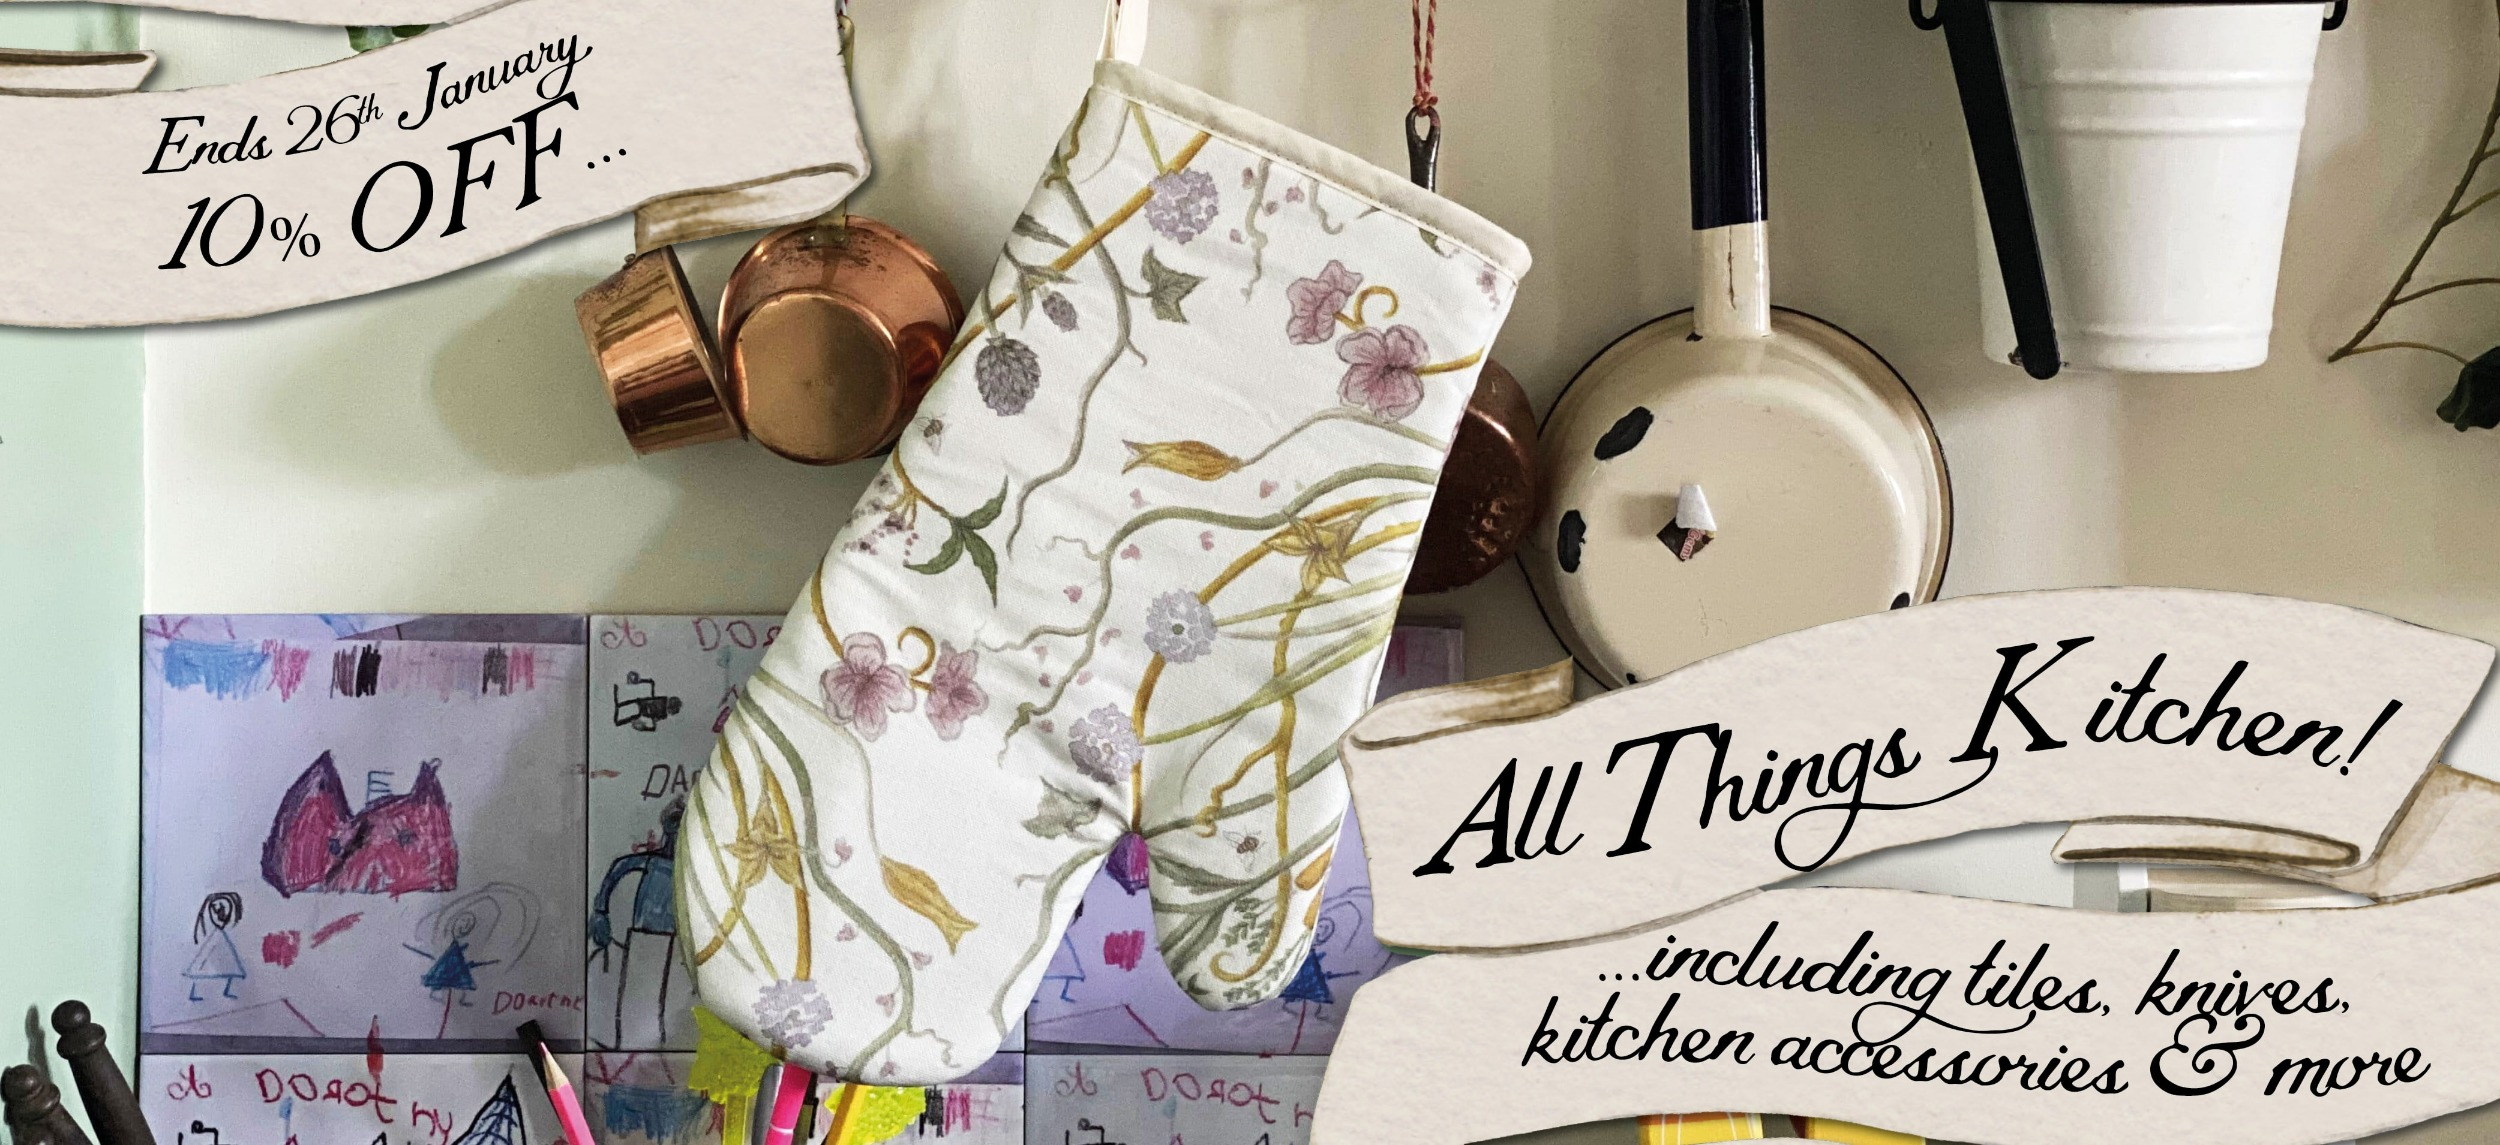 10% off All Things Kitchen!